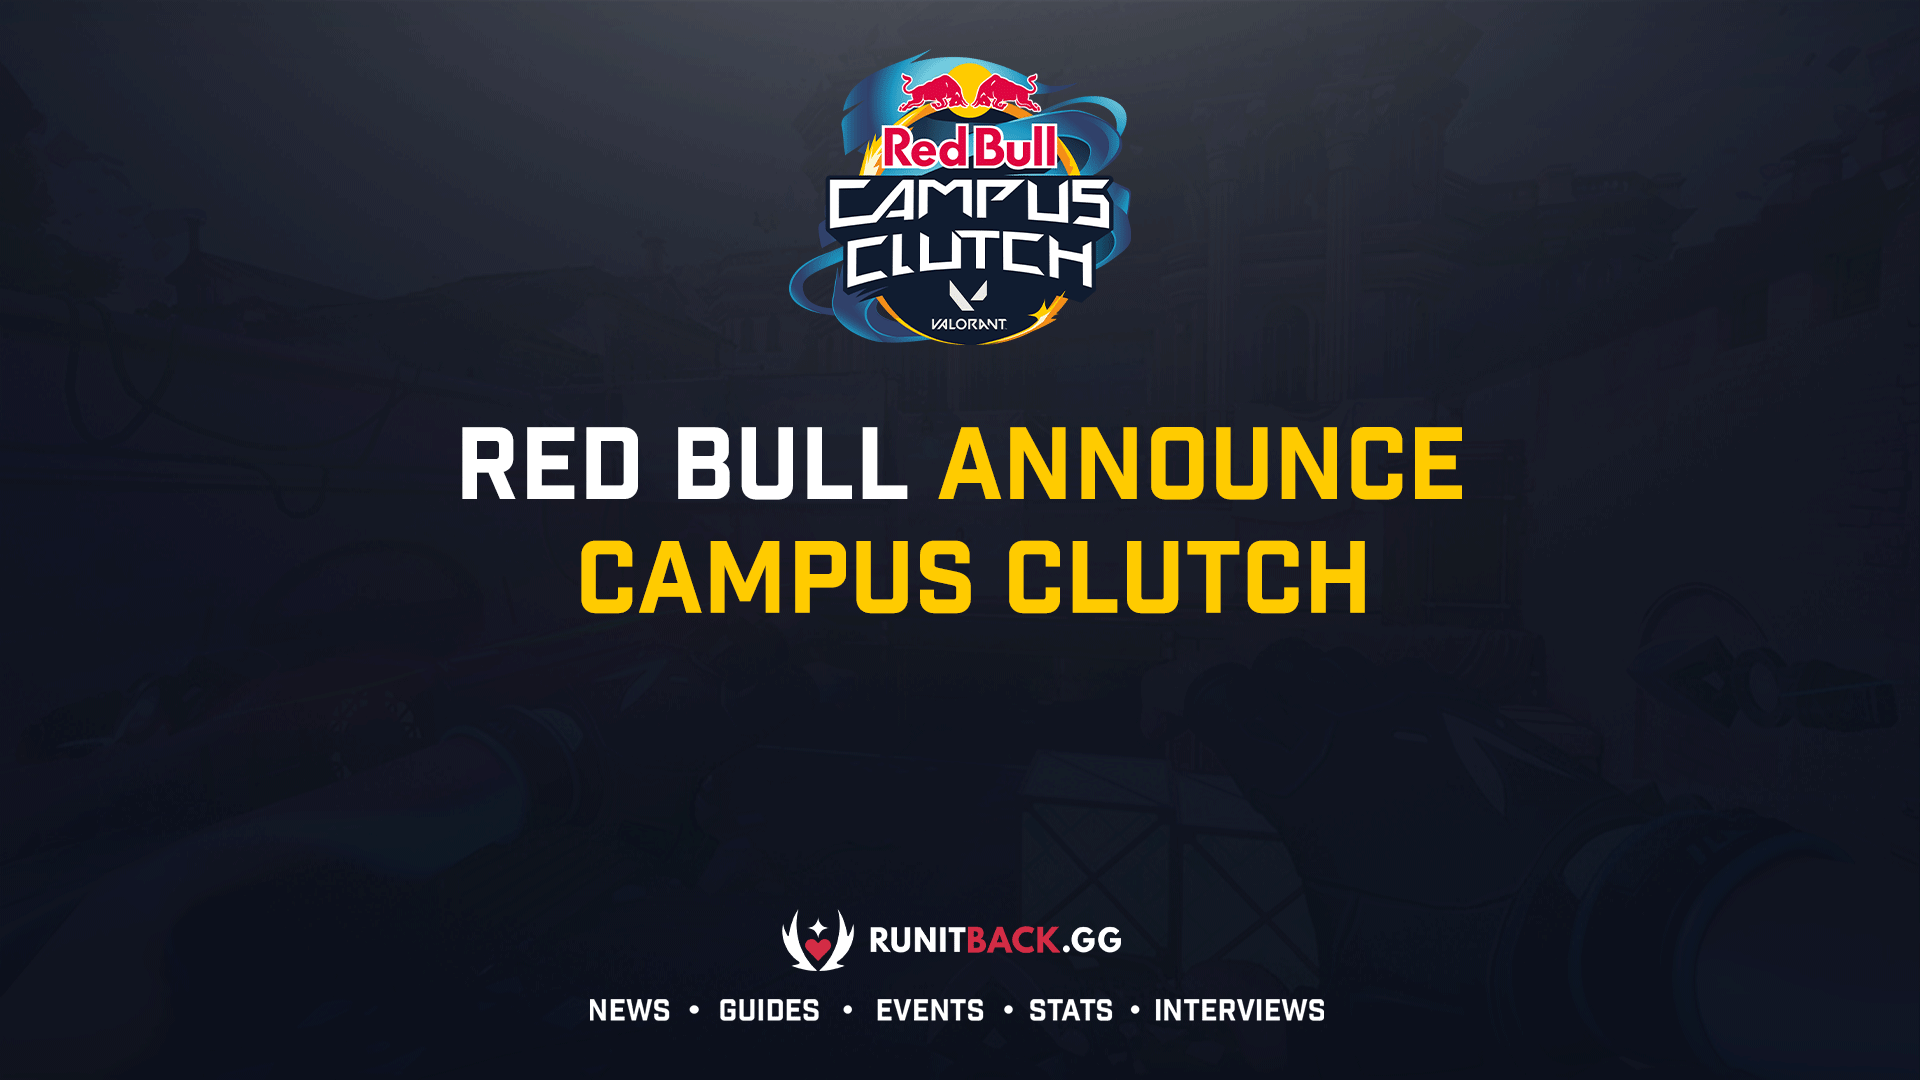 Red Bull announce Campus Clutch bringing Valorant to the collegiate level on a global scale